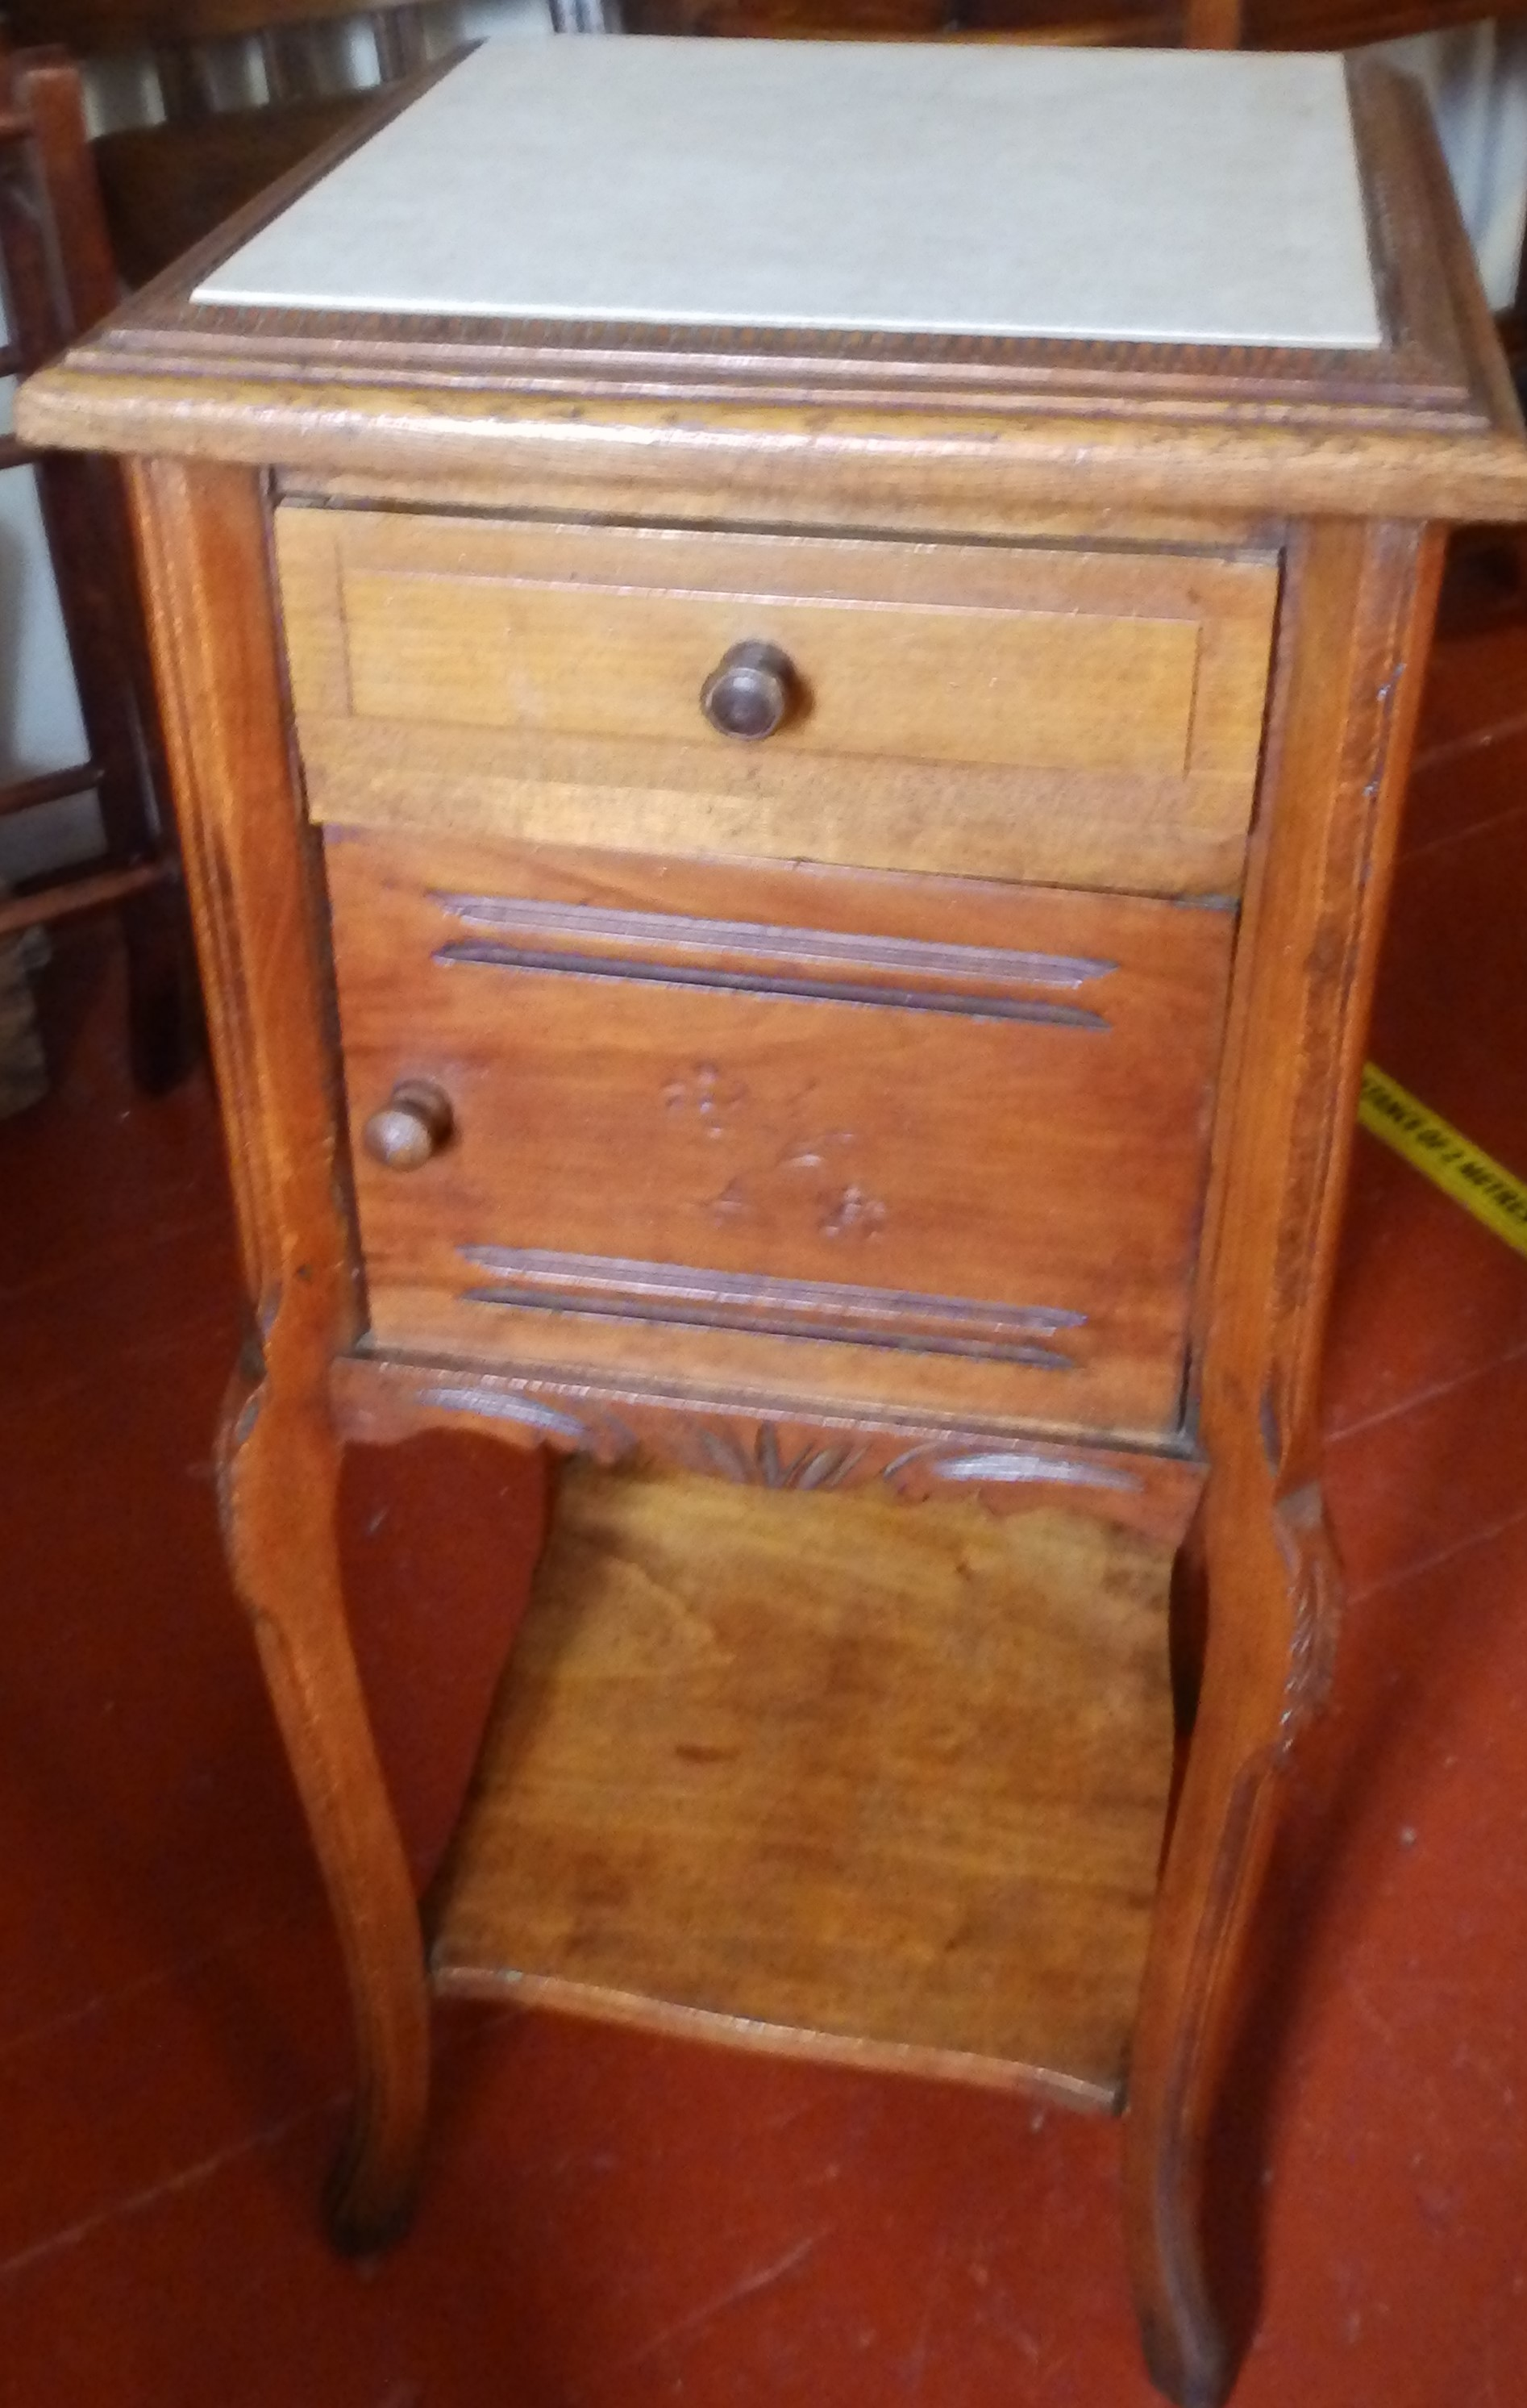 French pot-cupboard